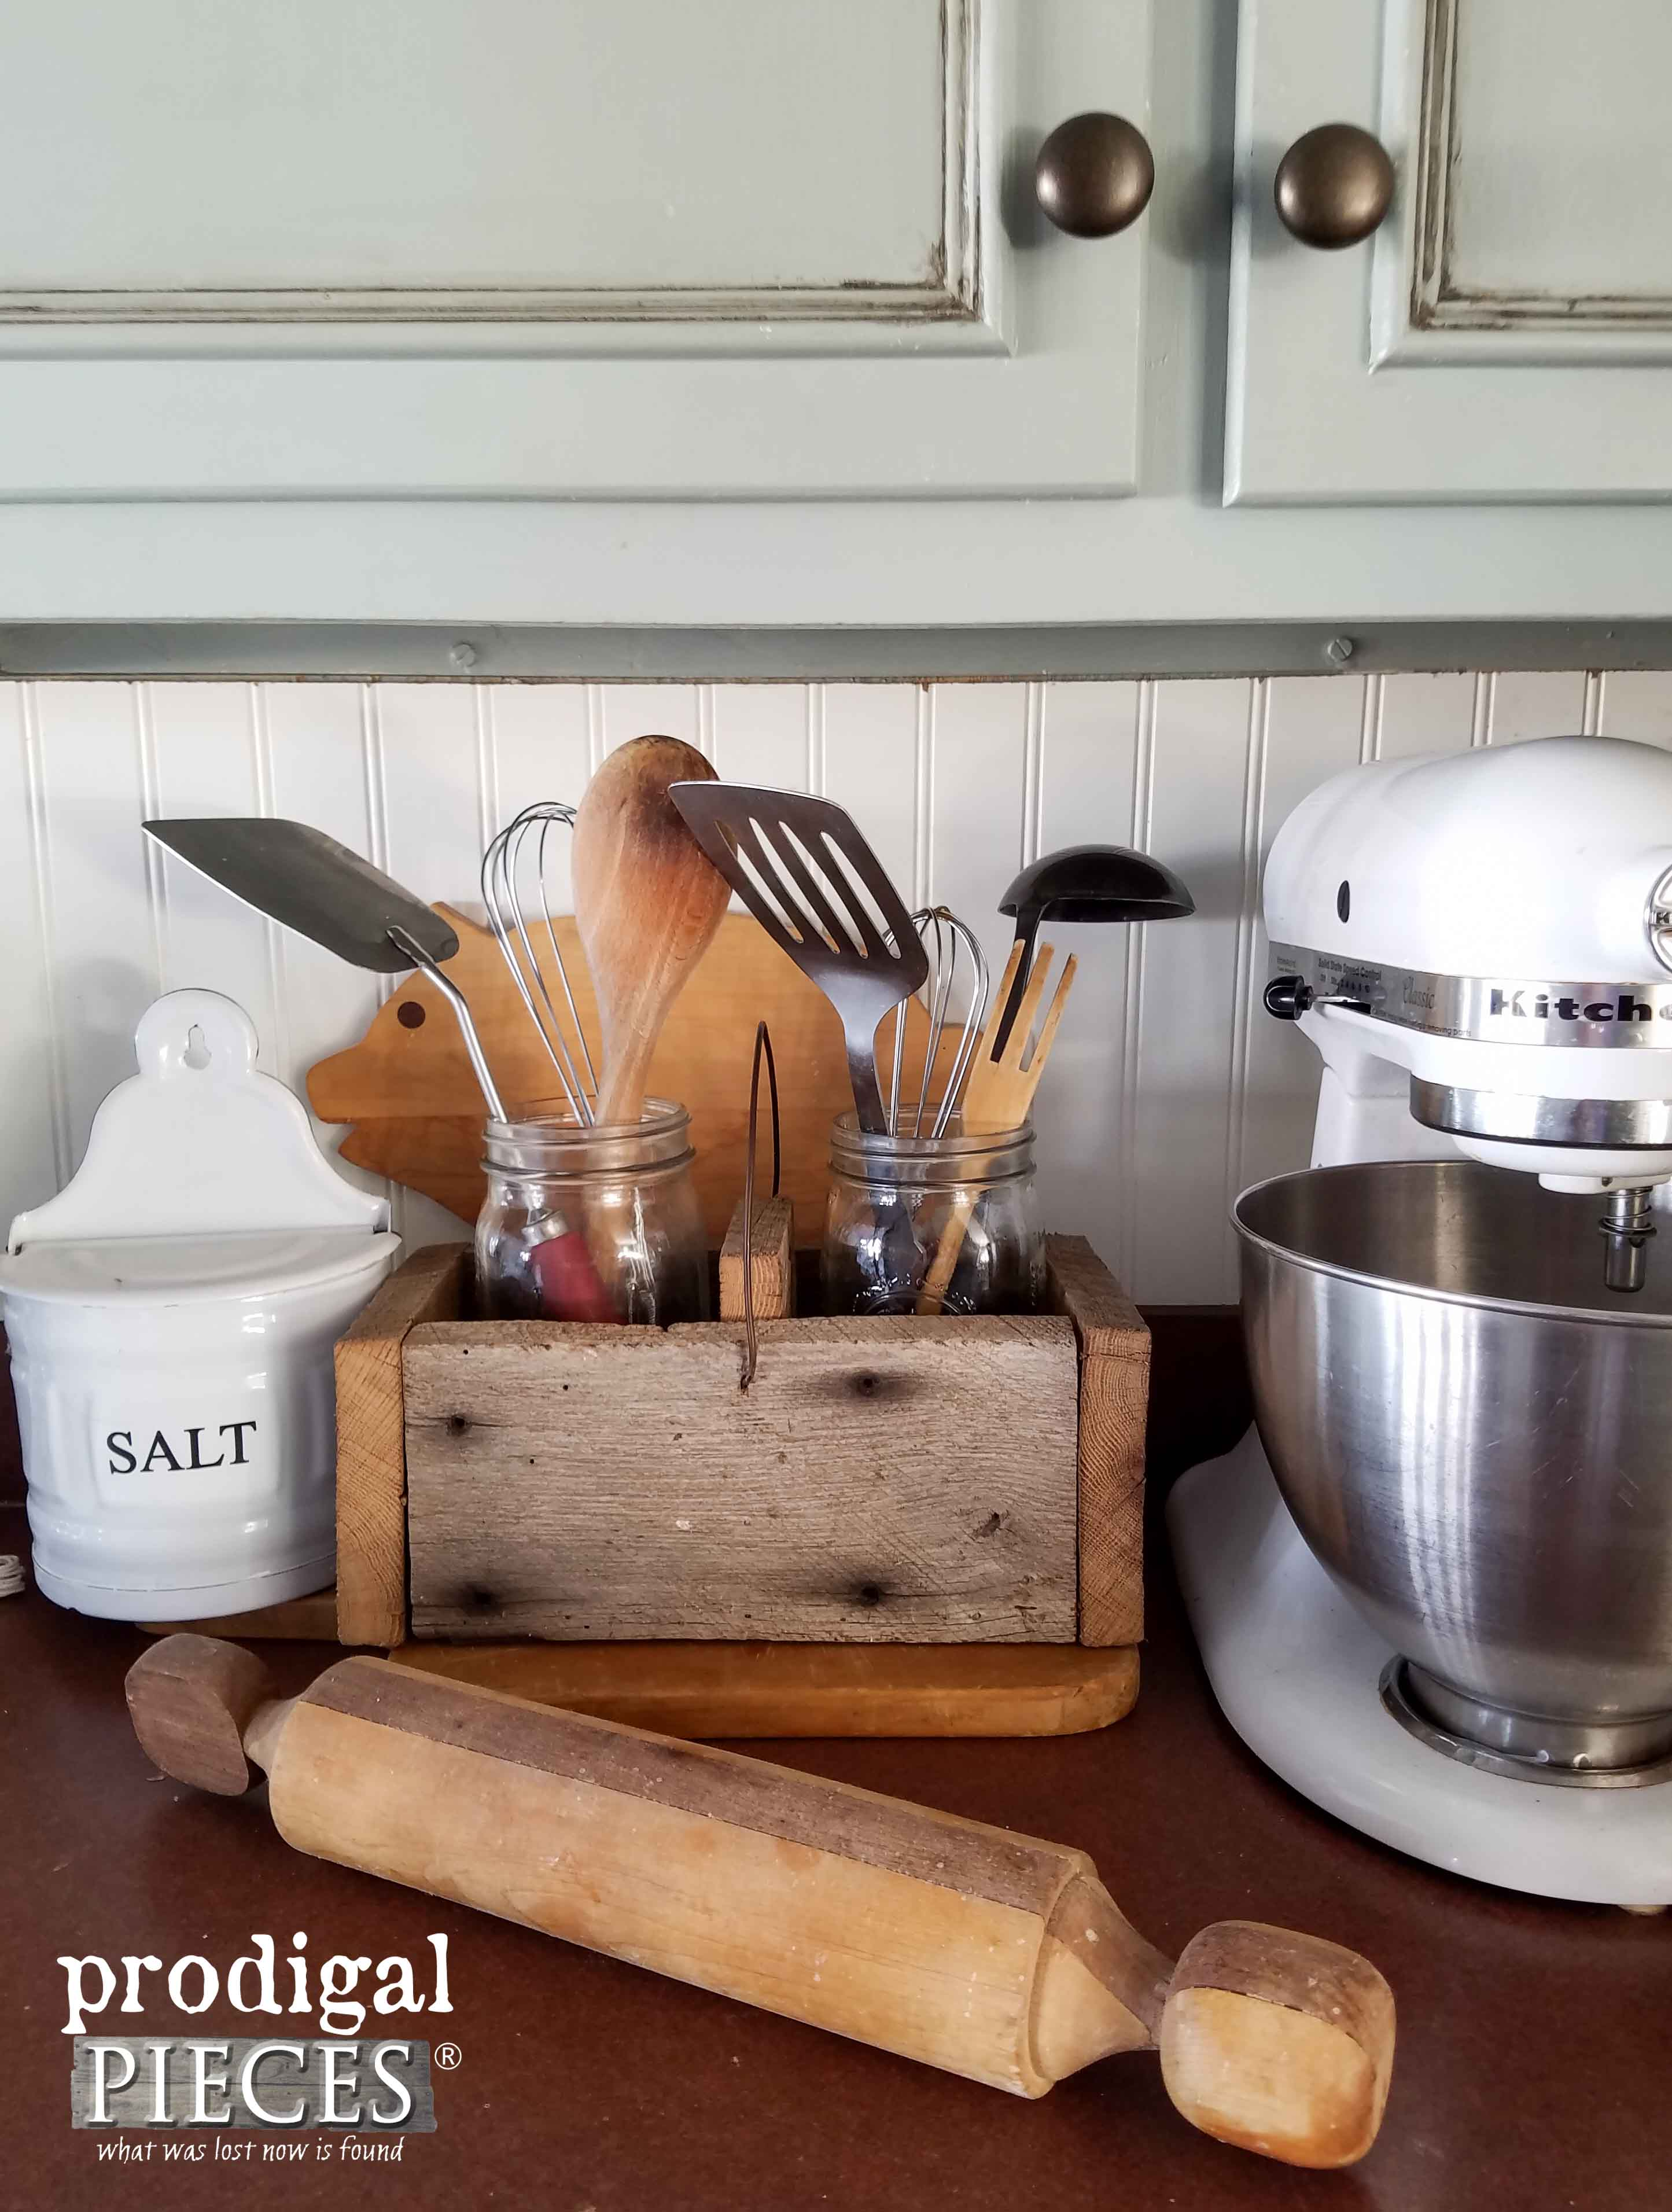 DIY Wooden Kitchen Caddy from Reclaimed or New Wood ~ Tutorial by Prodigal Pieces | www.prodigalpieces.com